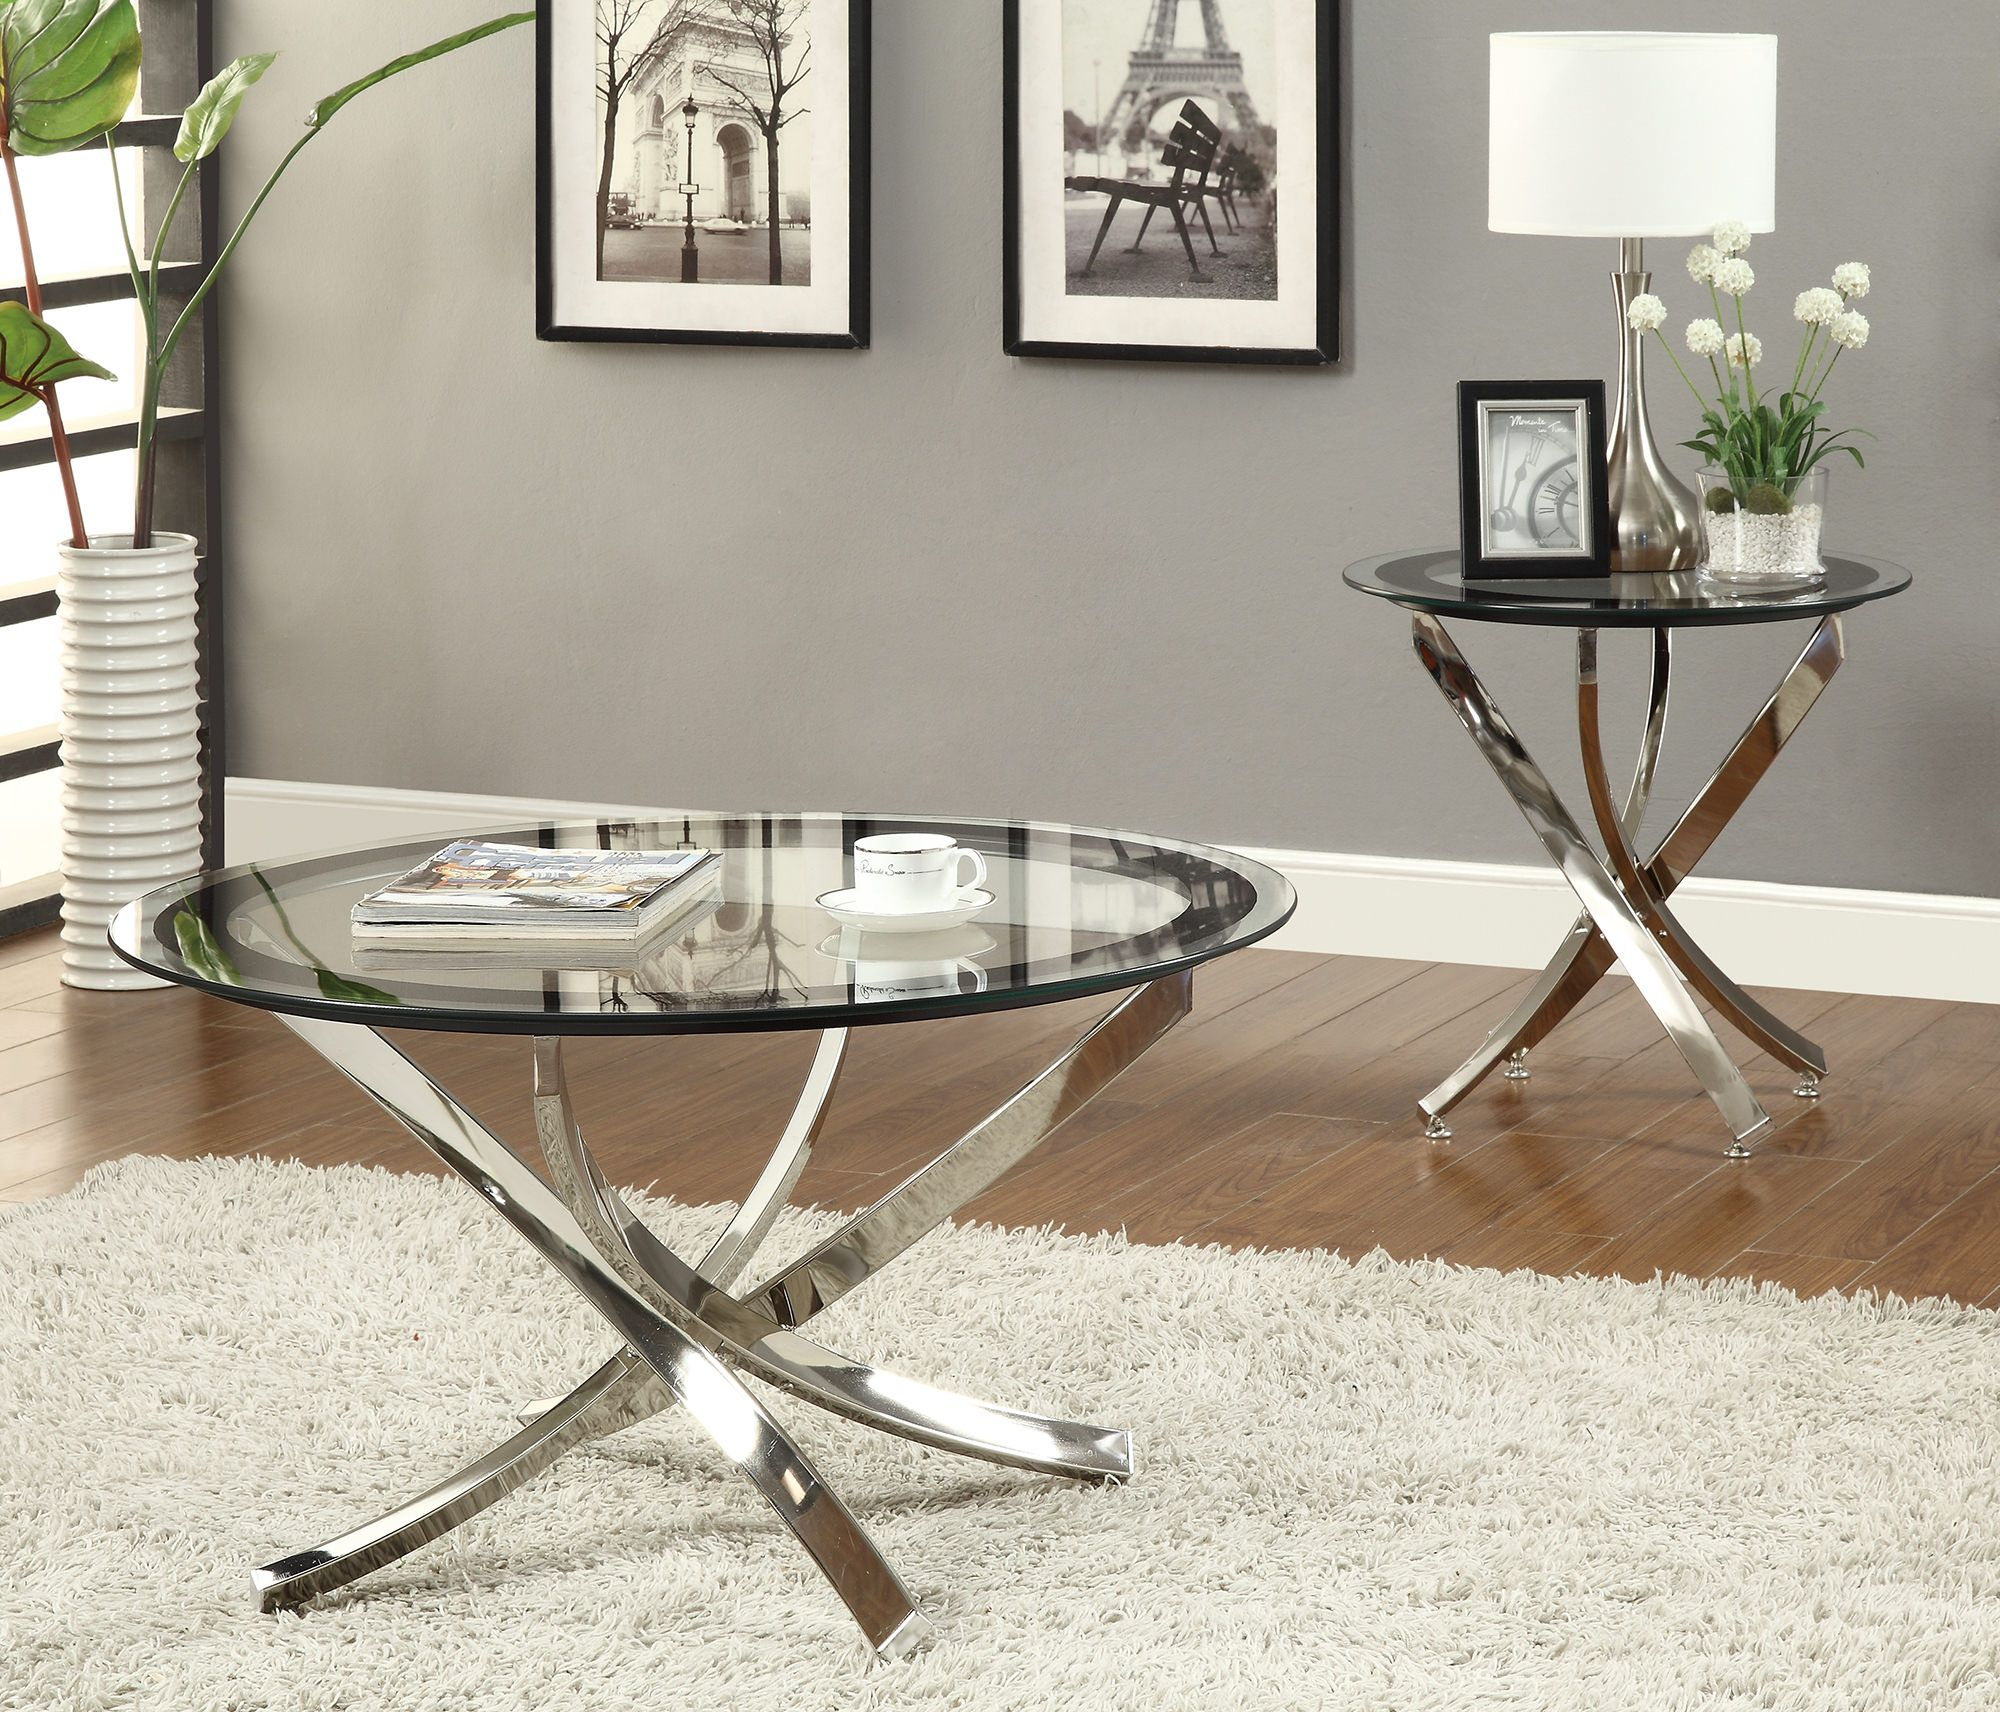 cocktail table tempered glass top home vision board elegant end tables round coffee small side set laura ashley comforters occasional big lots lamps powell hills provence bar